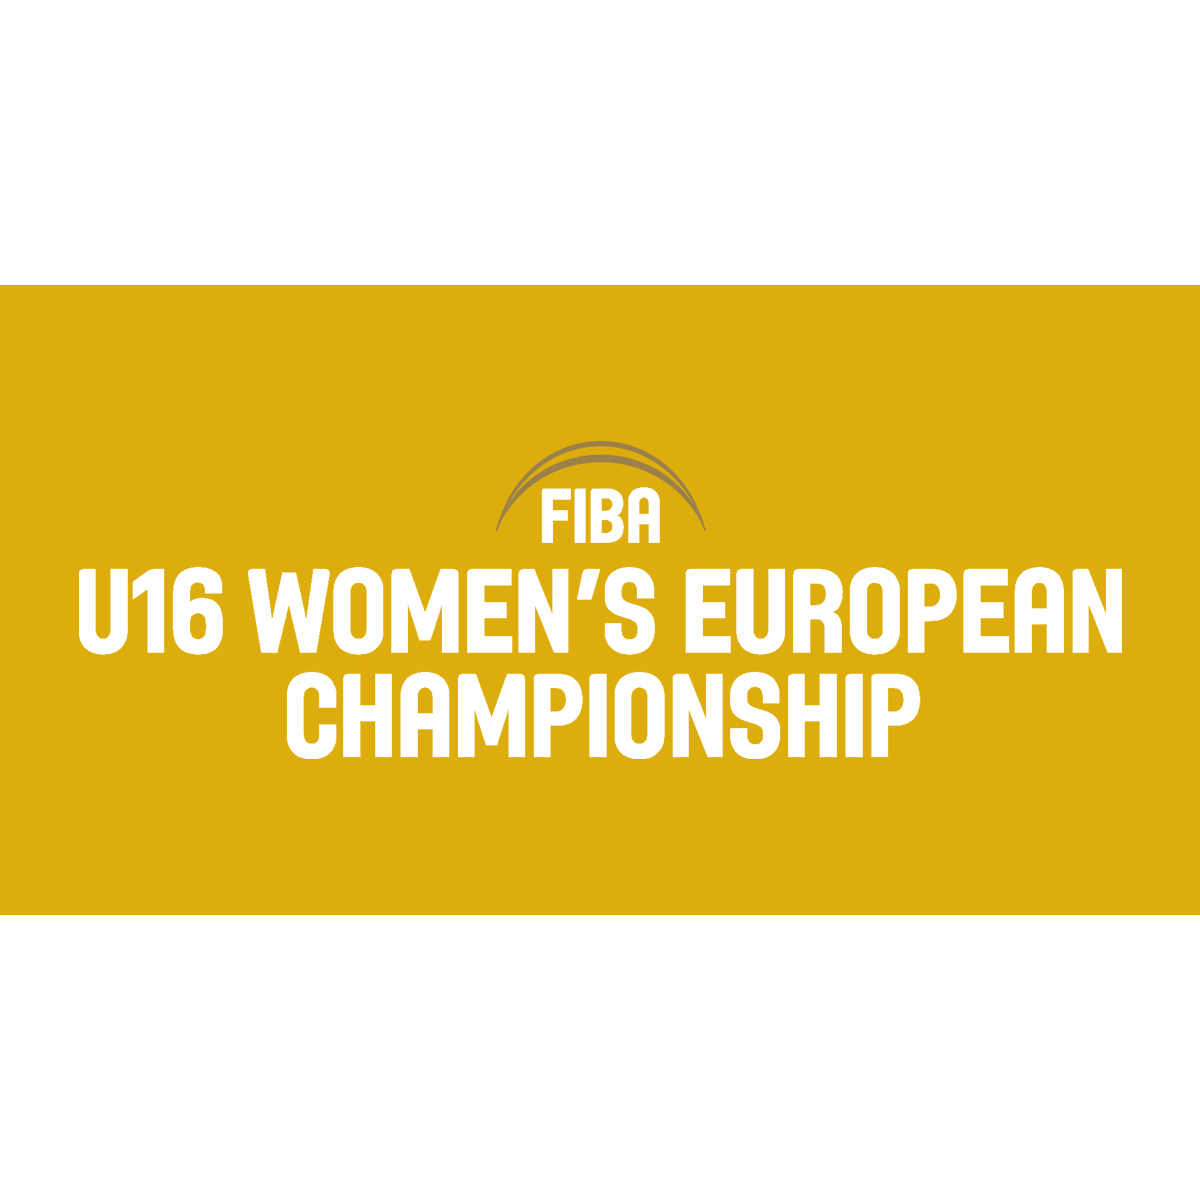 2014 FIBA U16 Women's European Basketball Championship